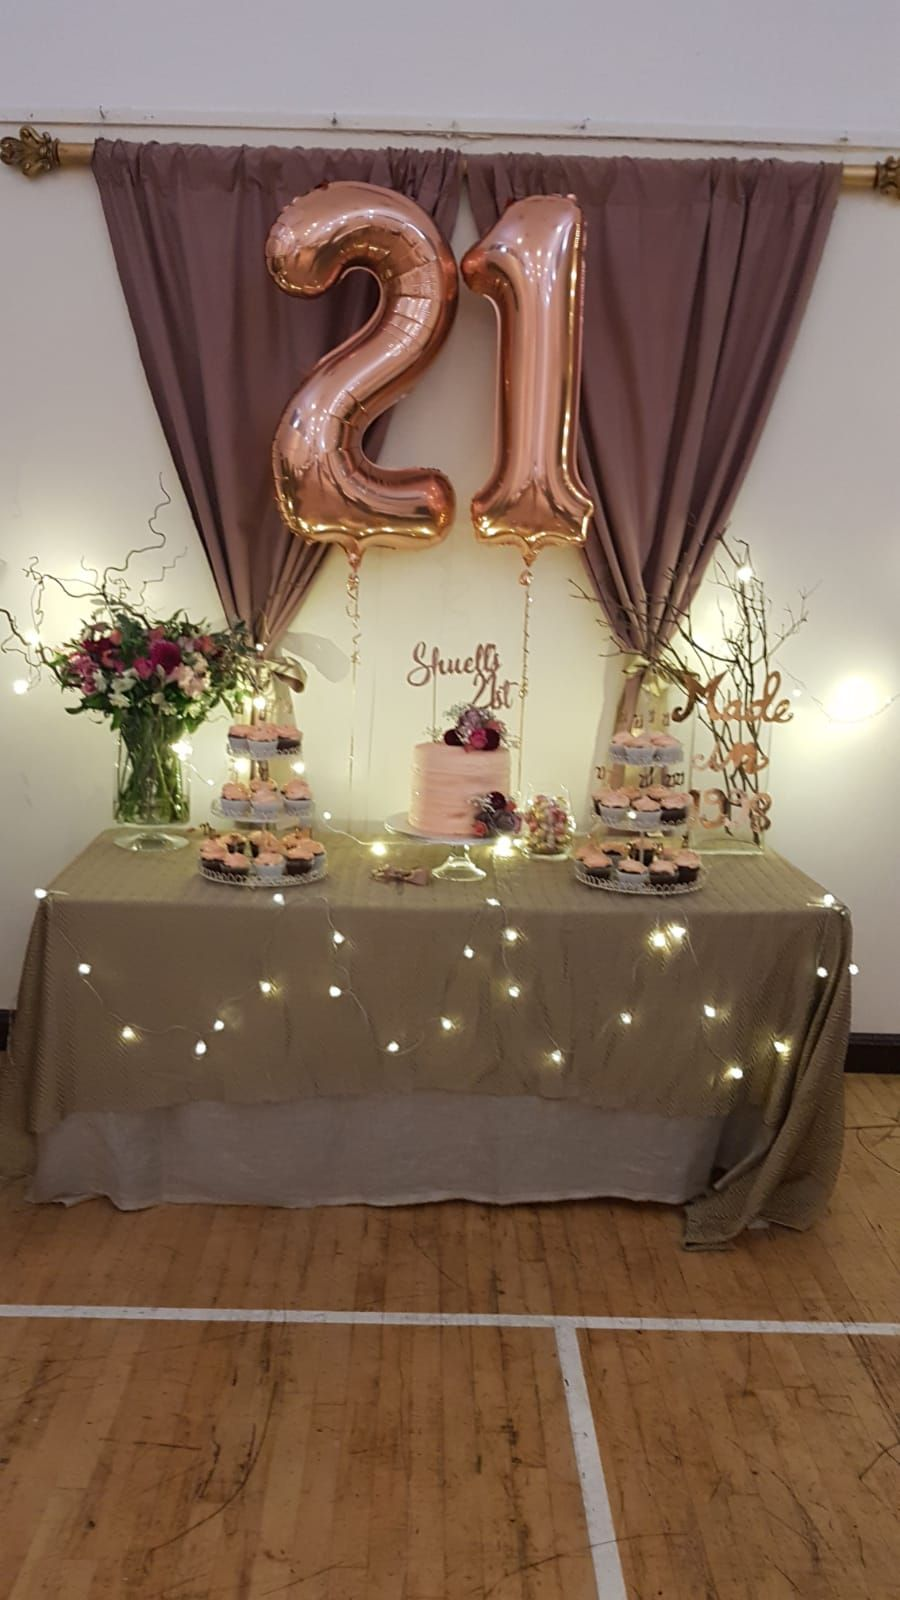 21st Birthday Rose Gold Table Decor 21st Birthday Decorations Gold Theme Birthday Party Rose Gold Party Theme